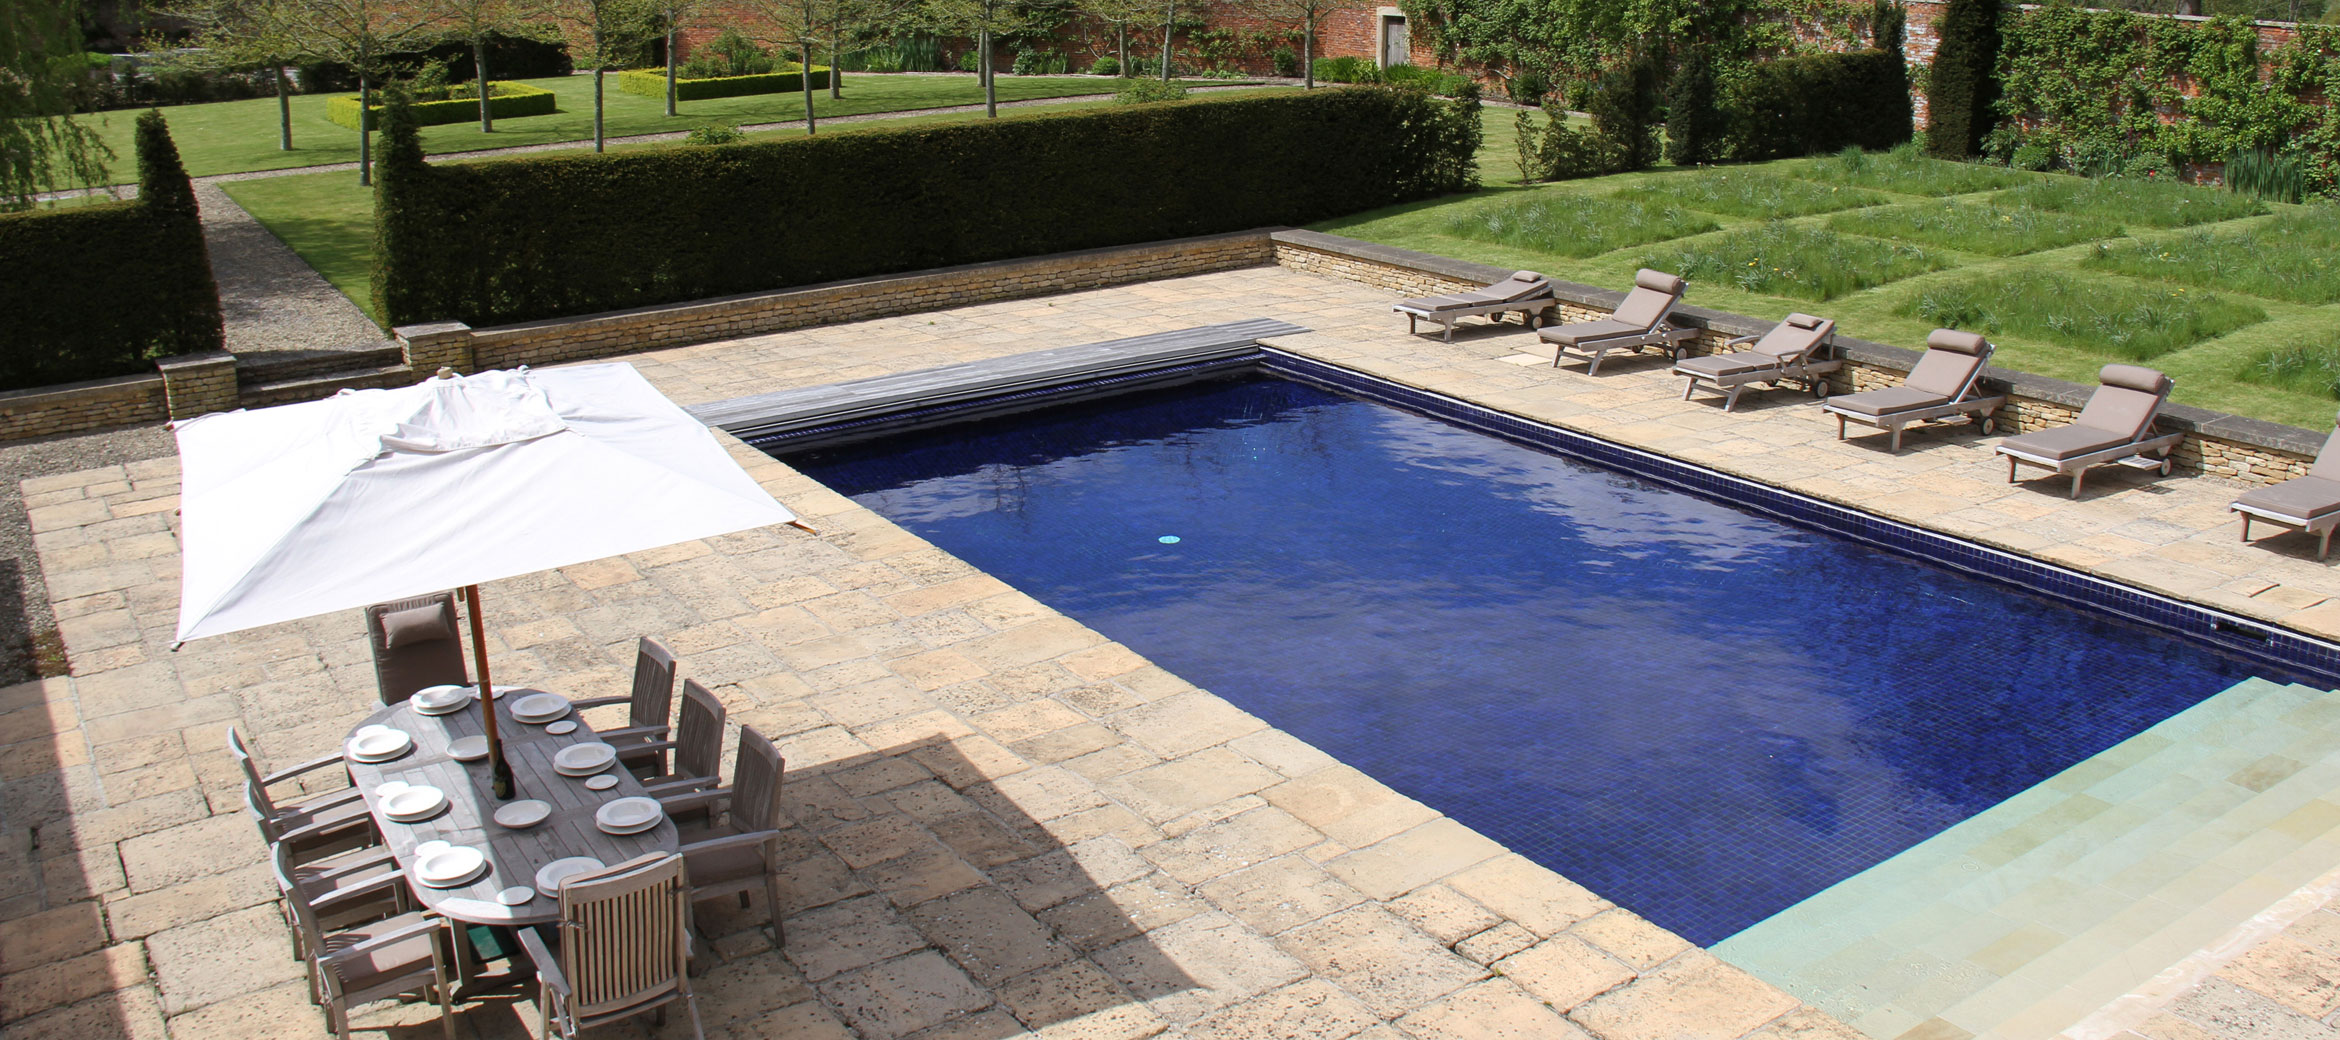 langley-park-cotswold-heated-outdoor-swimming-pool